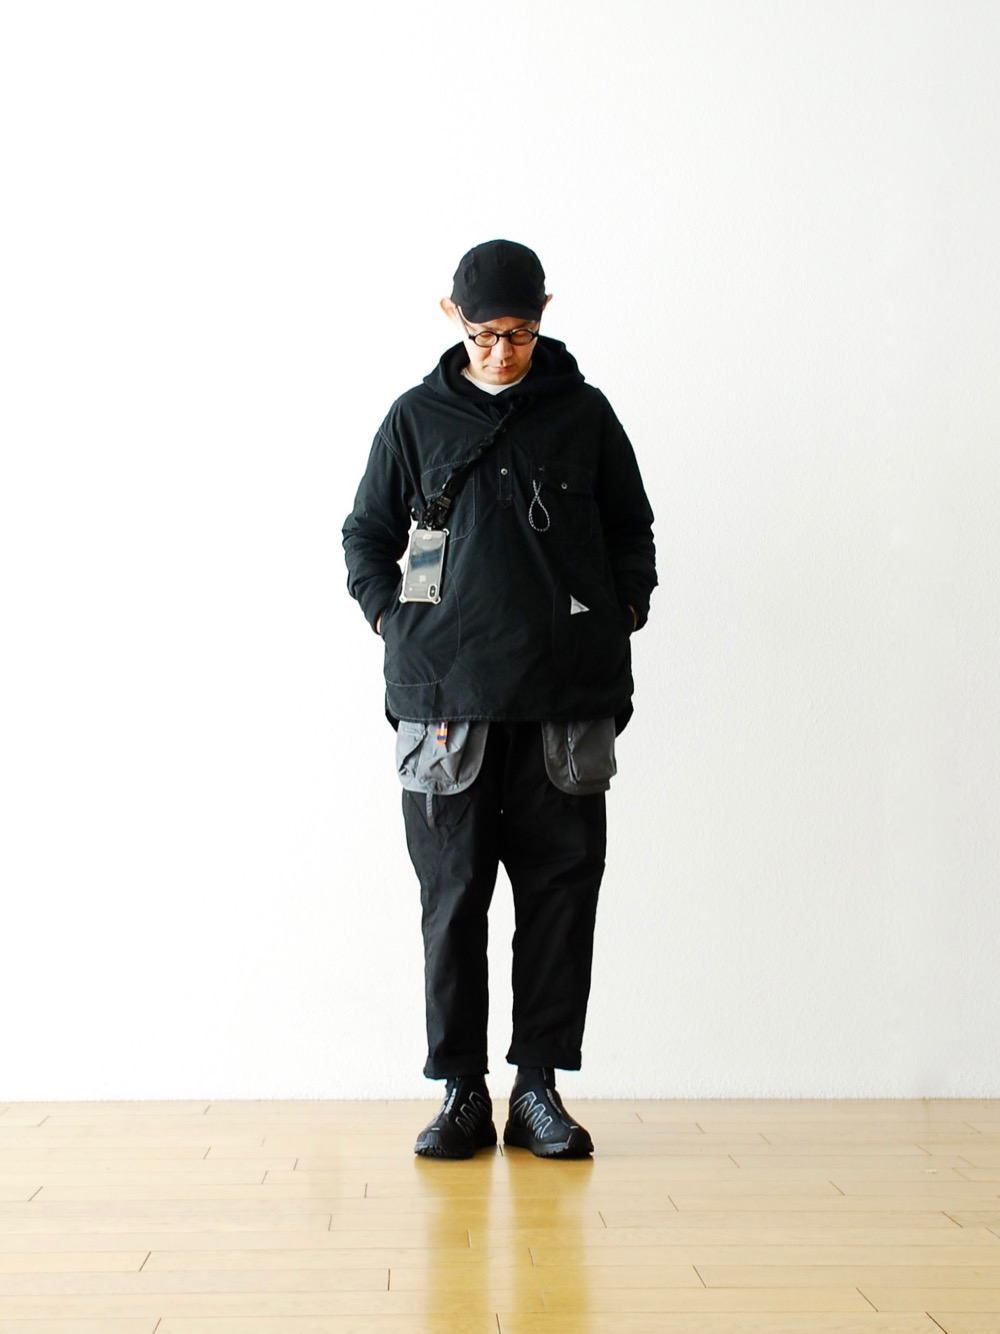 """[Limited]and wander × SALOMON (アンドワンダー × サロモン) """"reflective highcut sneakers by salomon"""""""